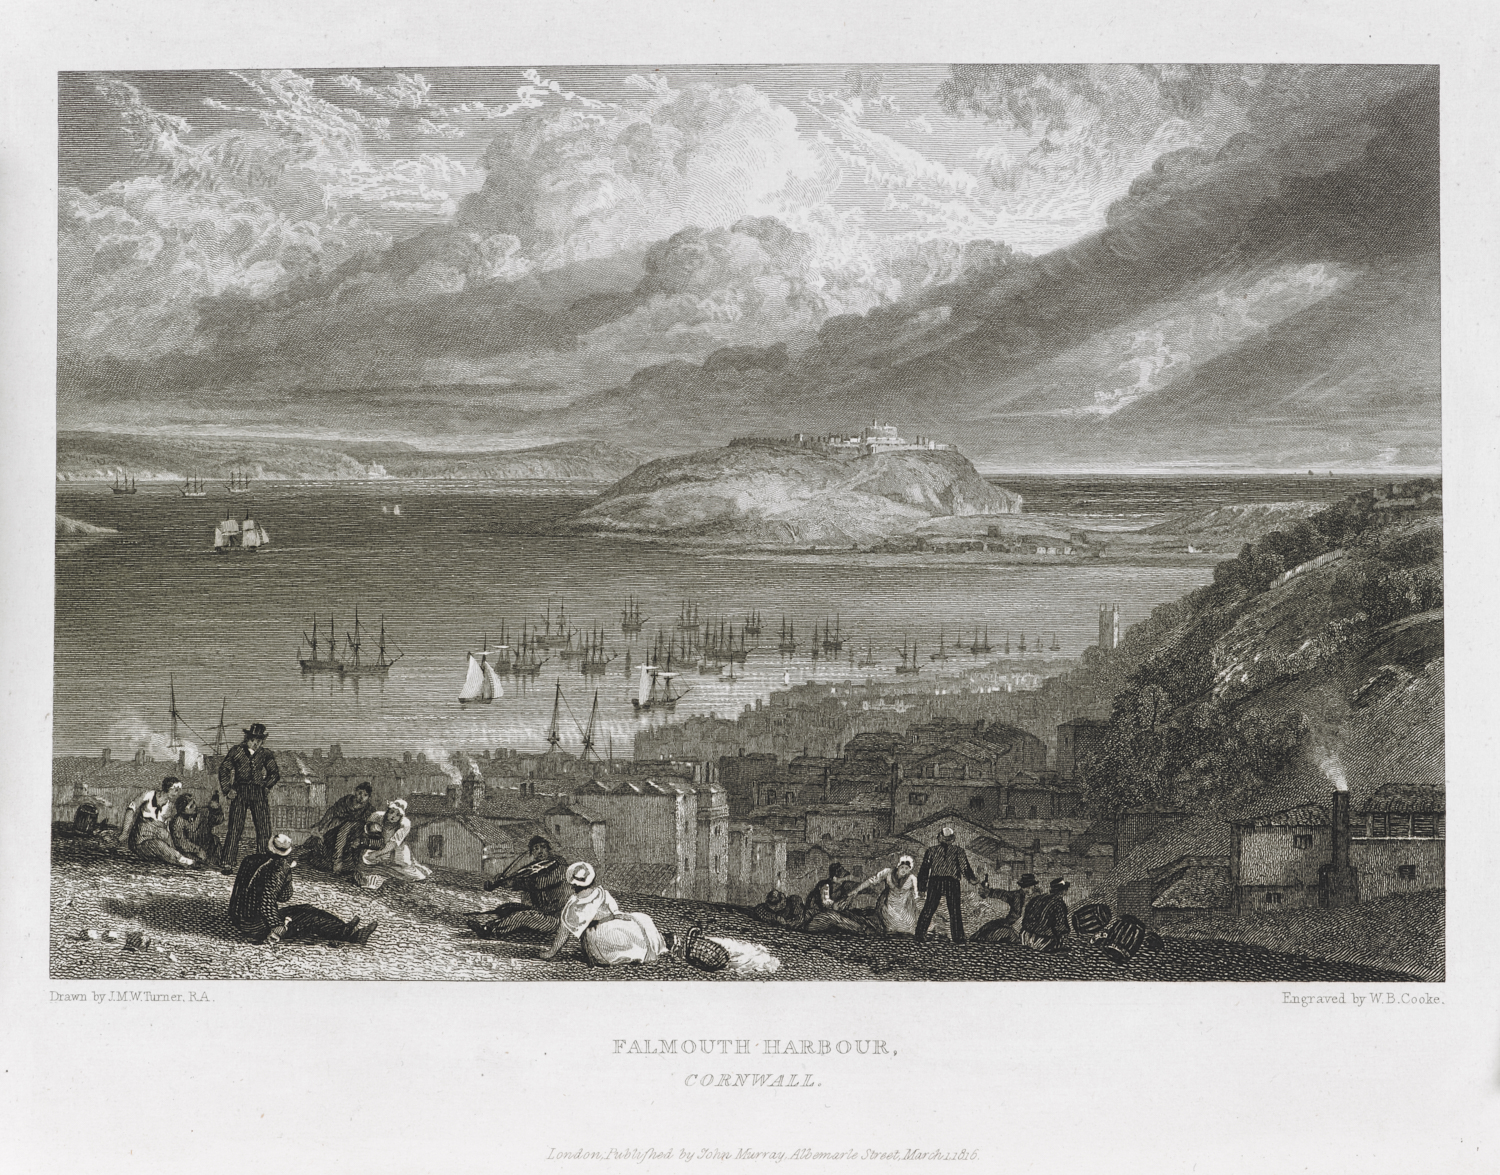 William Bernard Cooke (1778-1855) after Joseph Mallord William Turner (1775-1851), Falmouth Harbour, Cornwall, published as plate 65 in Picturesque Views of the Southern Coast of England,  London, , 1816, etching and engraving, 22.5 x 30 cm,  189.e.2-3.